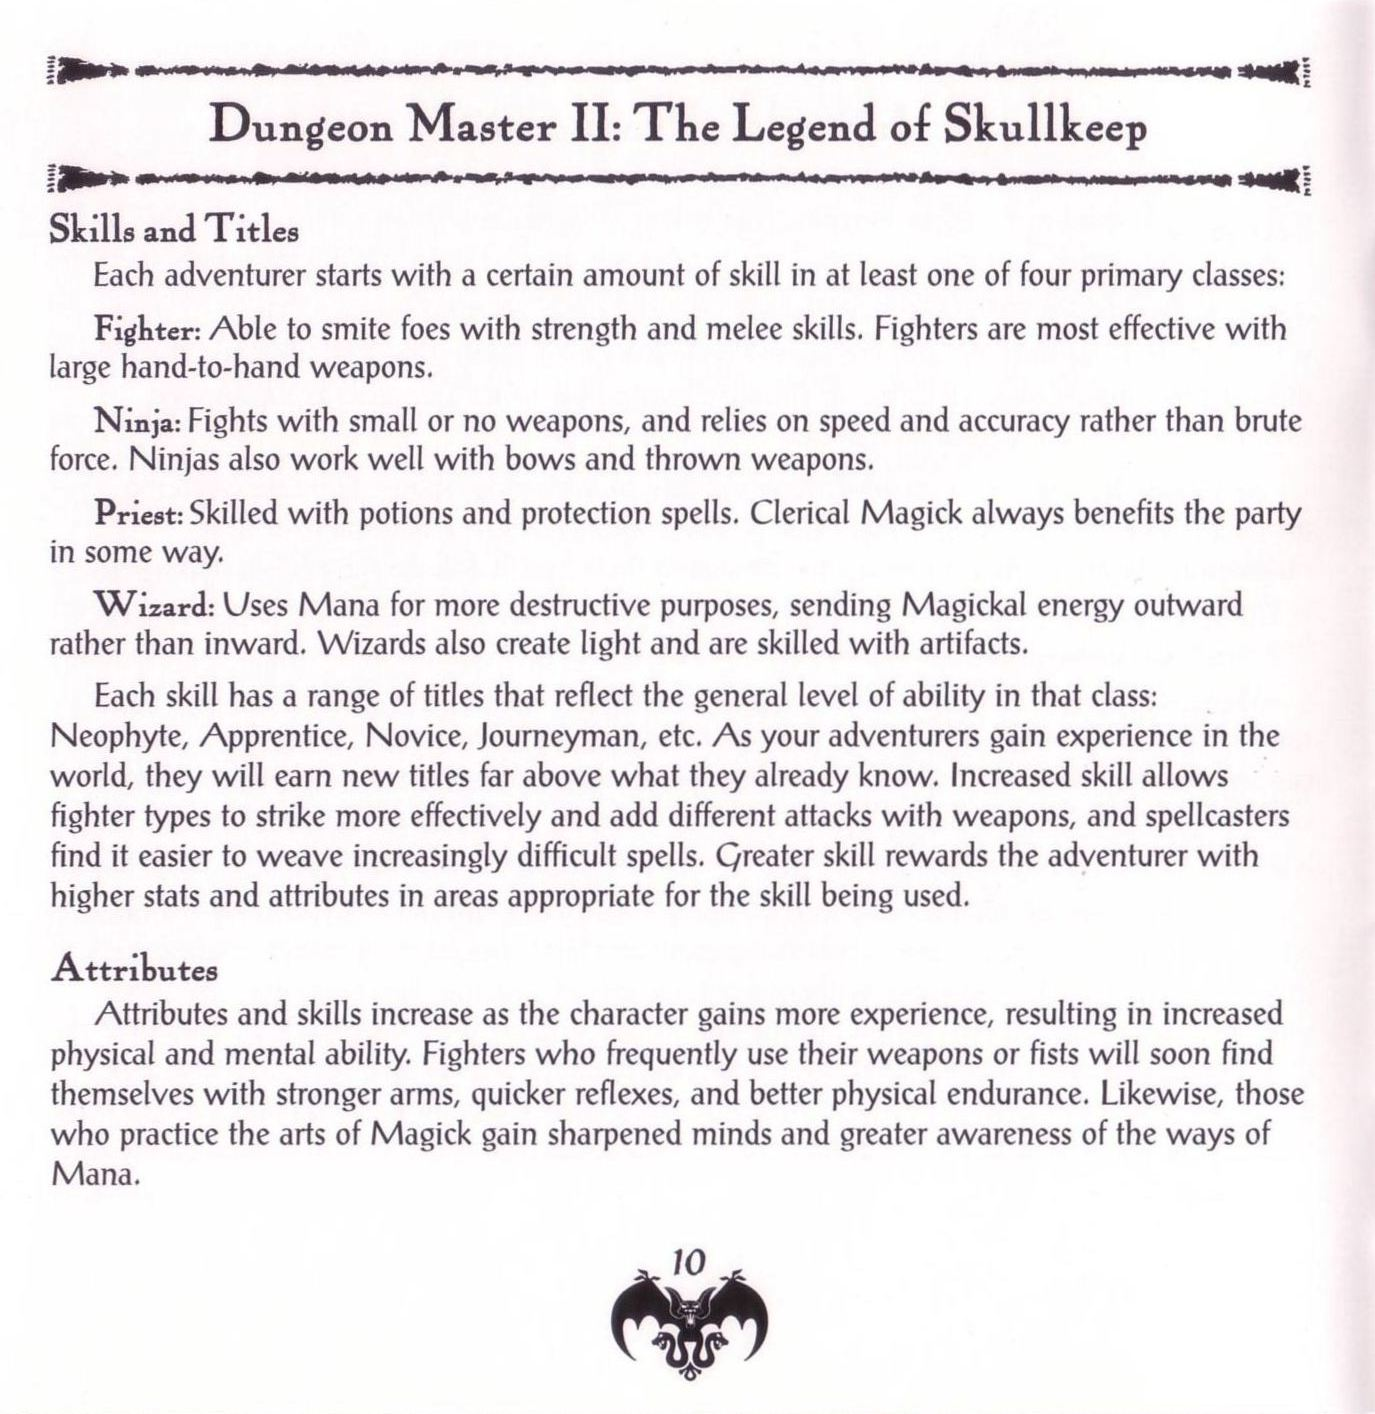 Game - Dungeon Master II - US - PC - Jewel Case - Booklet - Page 012 - Scan